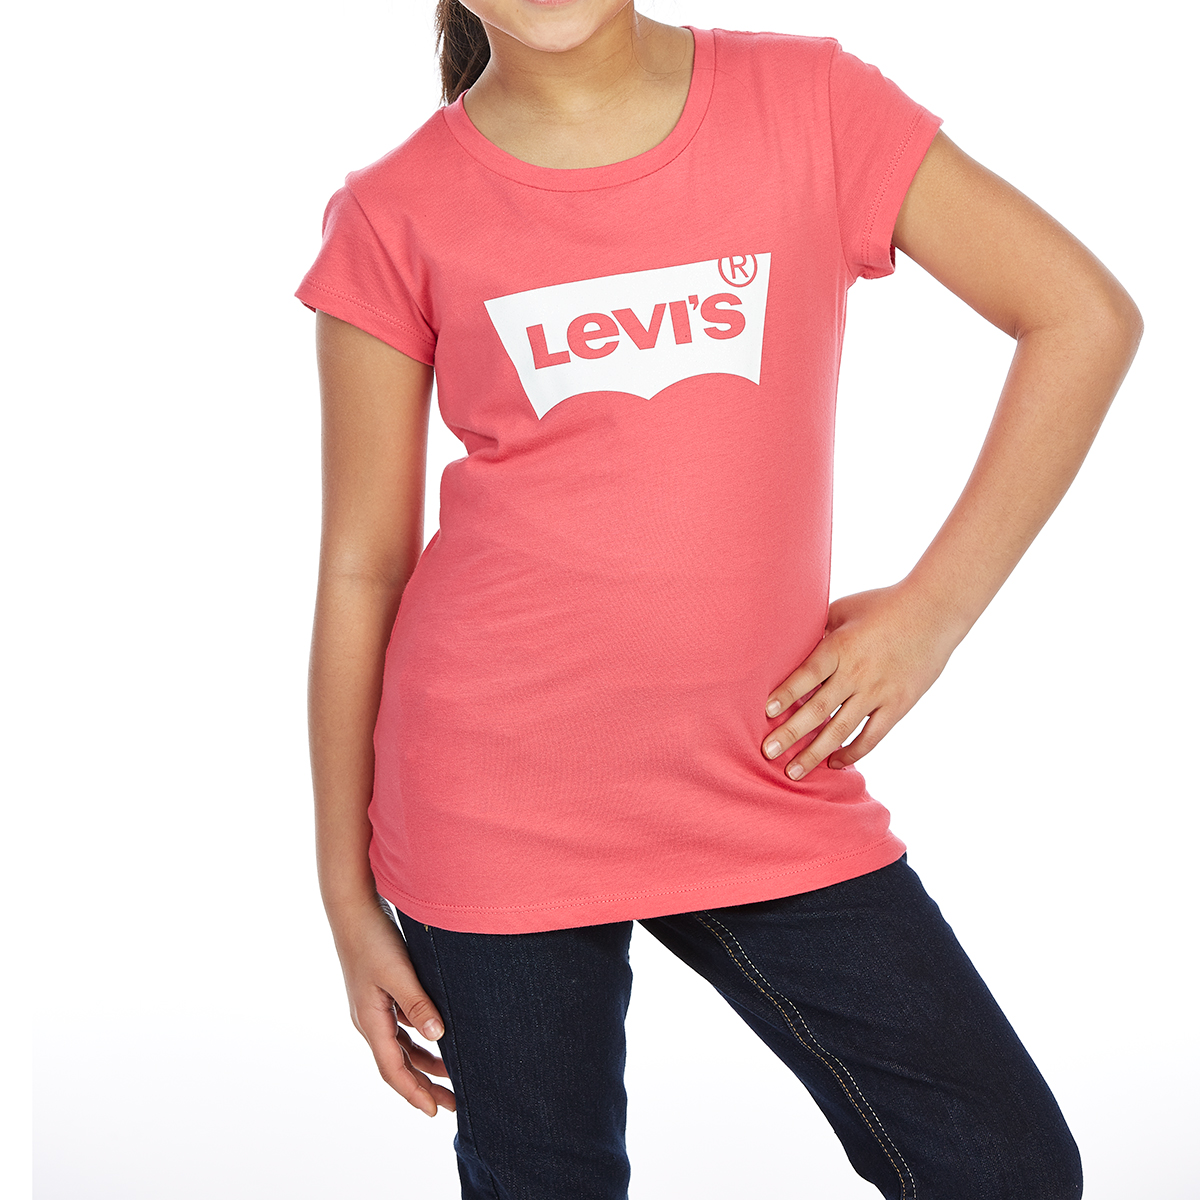 Levi's Big Girls' Batwing Short-Sleeve Tee - Red, S